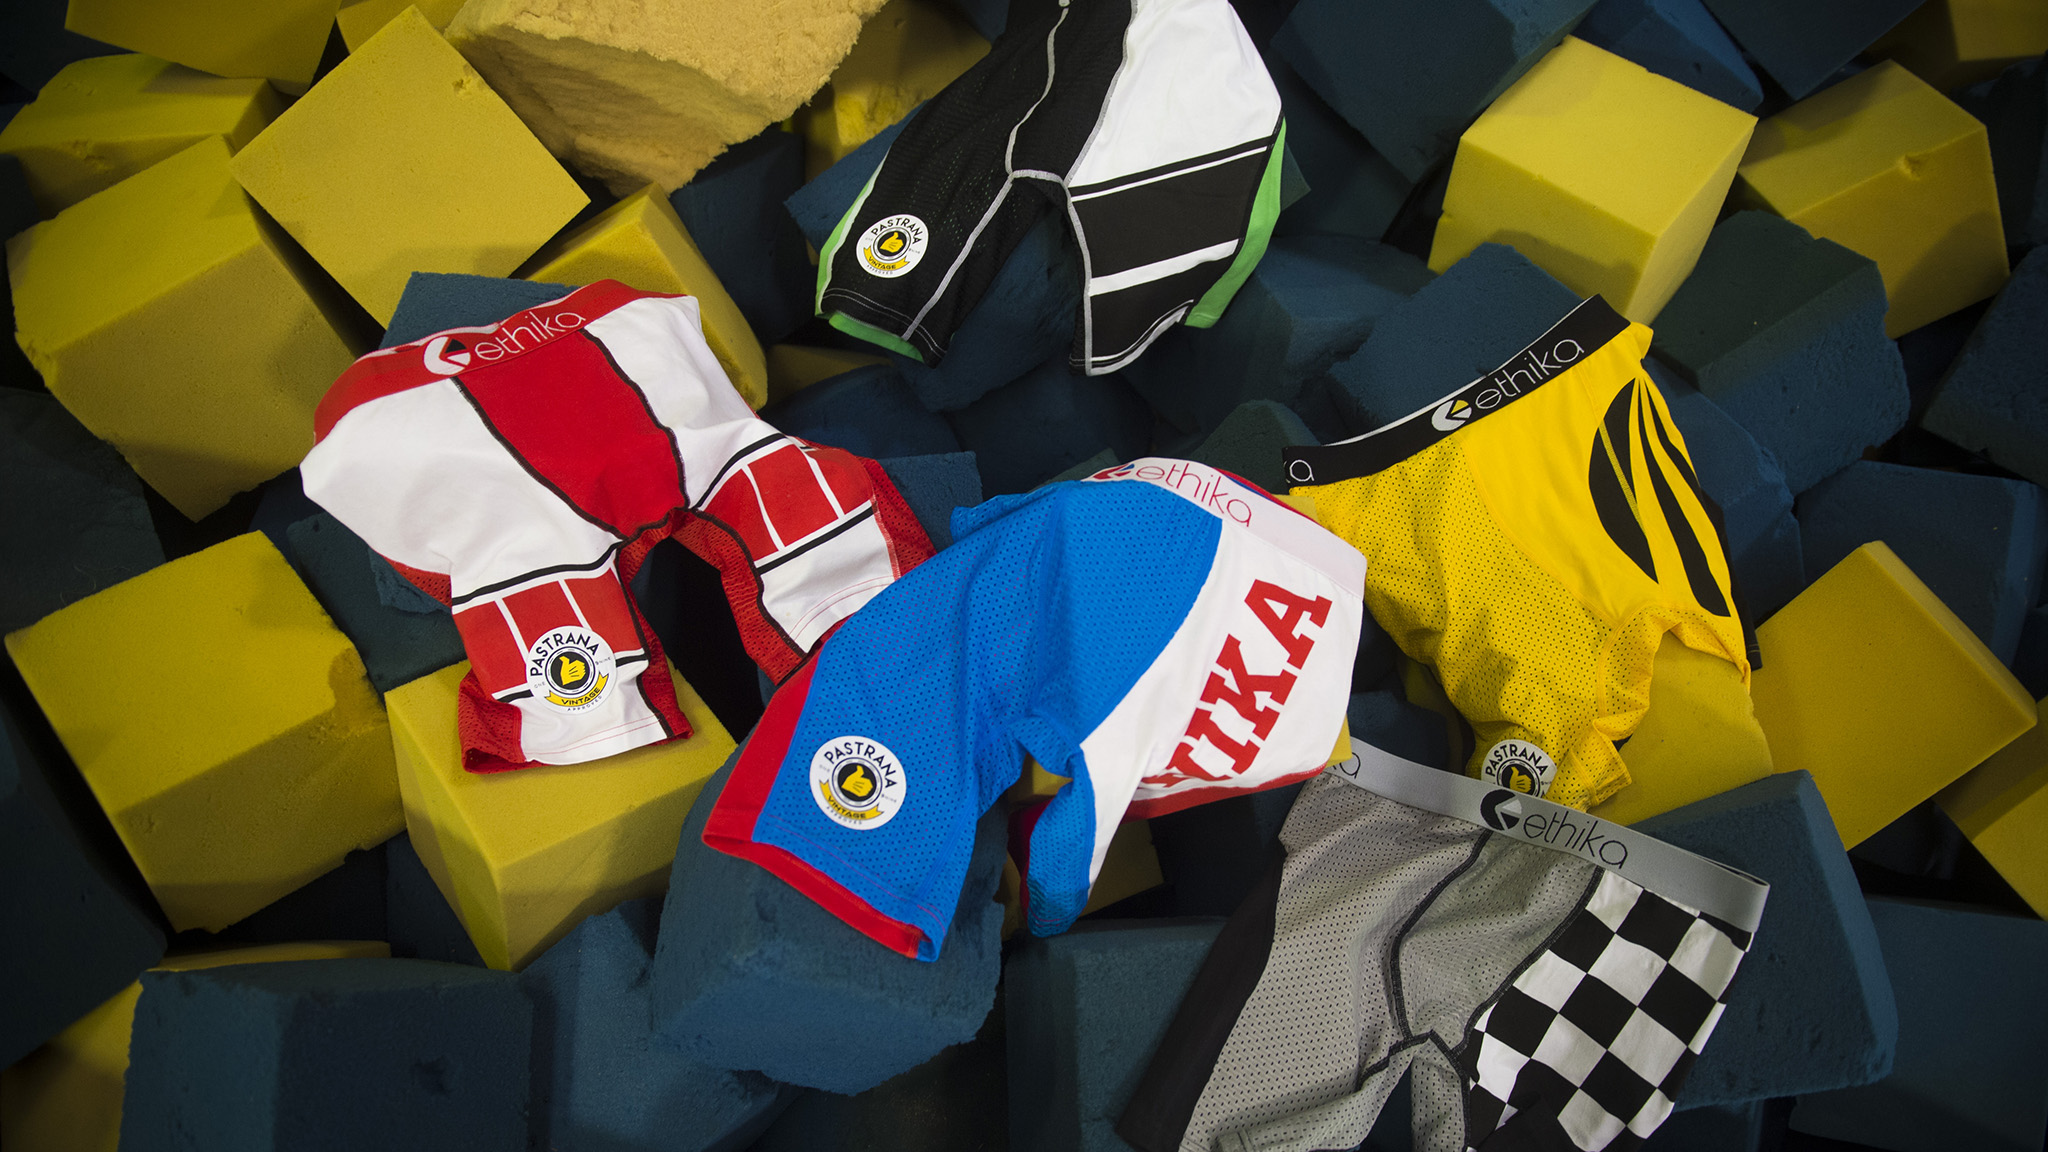 The Pastrana collection